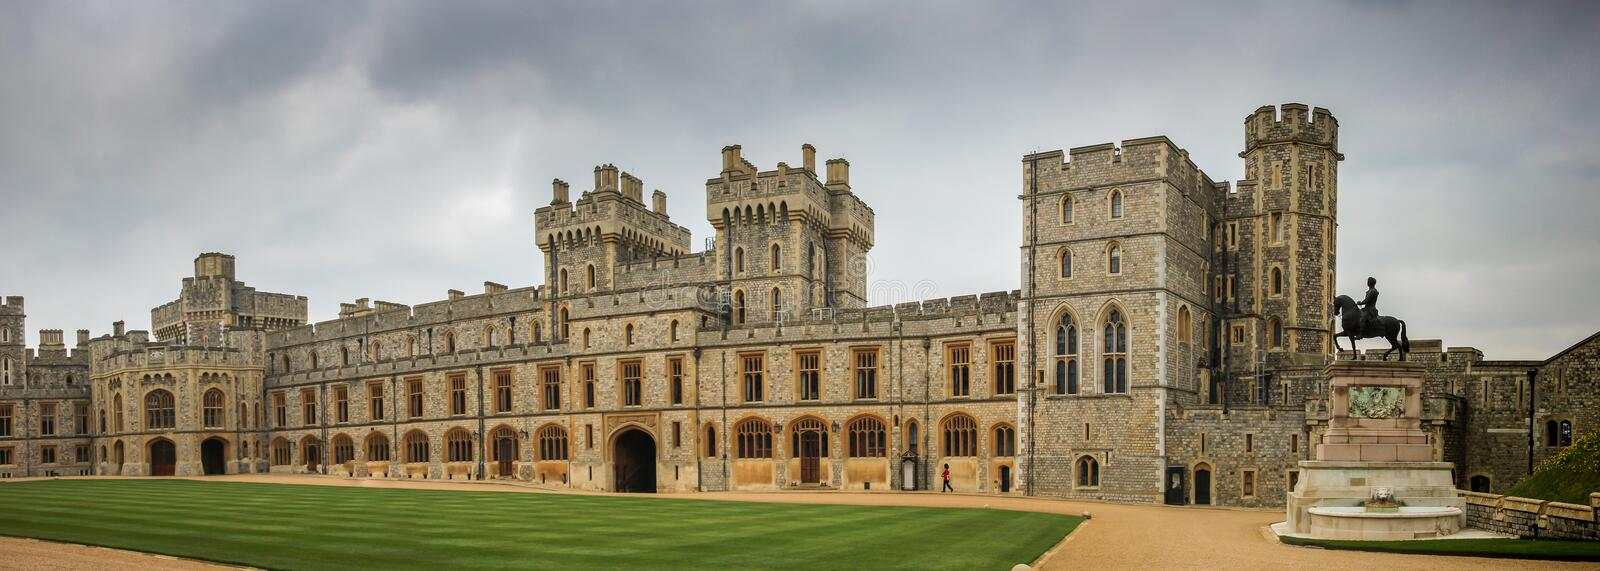 Windsor Castle Upper Ward Quadrangle photos stock